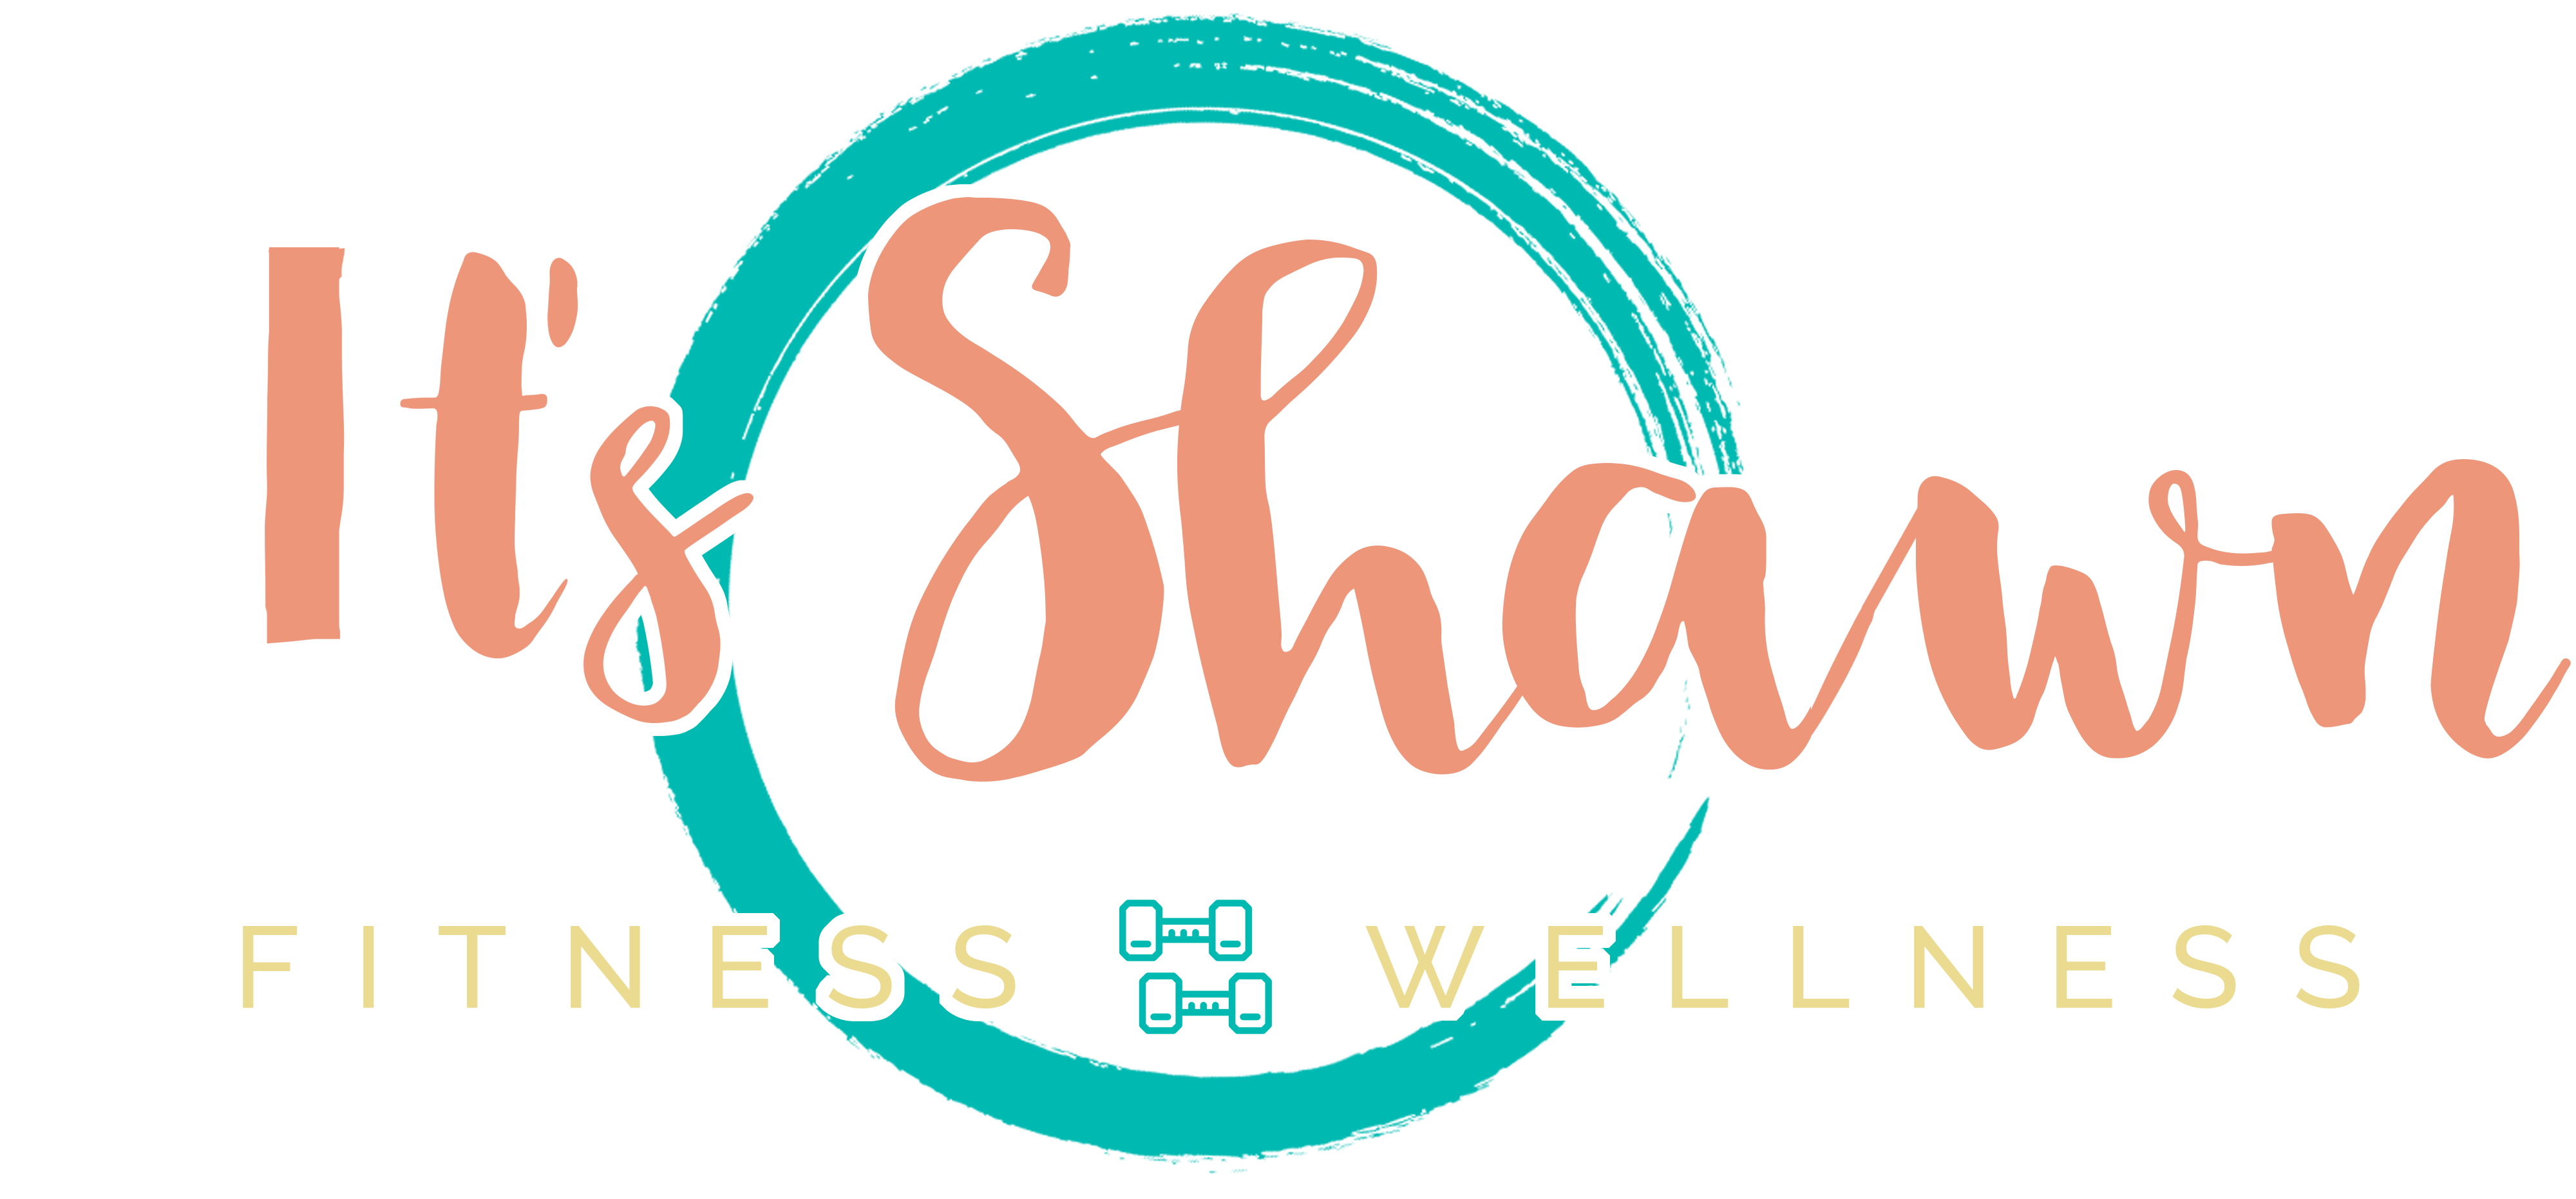 Fitness clipart physical wellness. It s shawn and